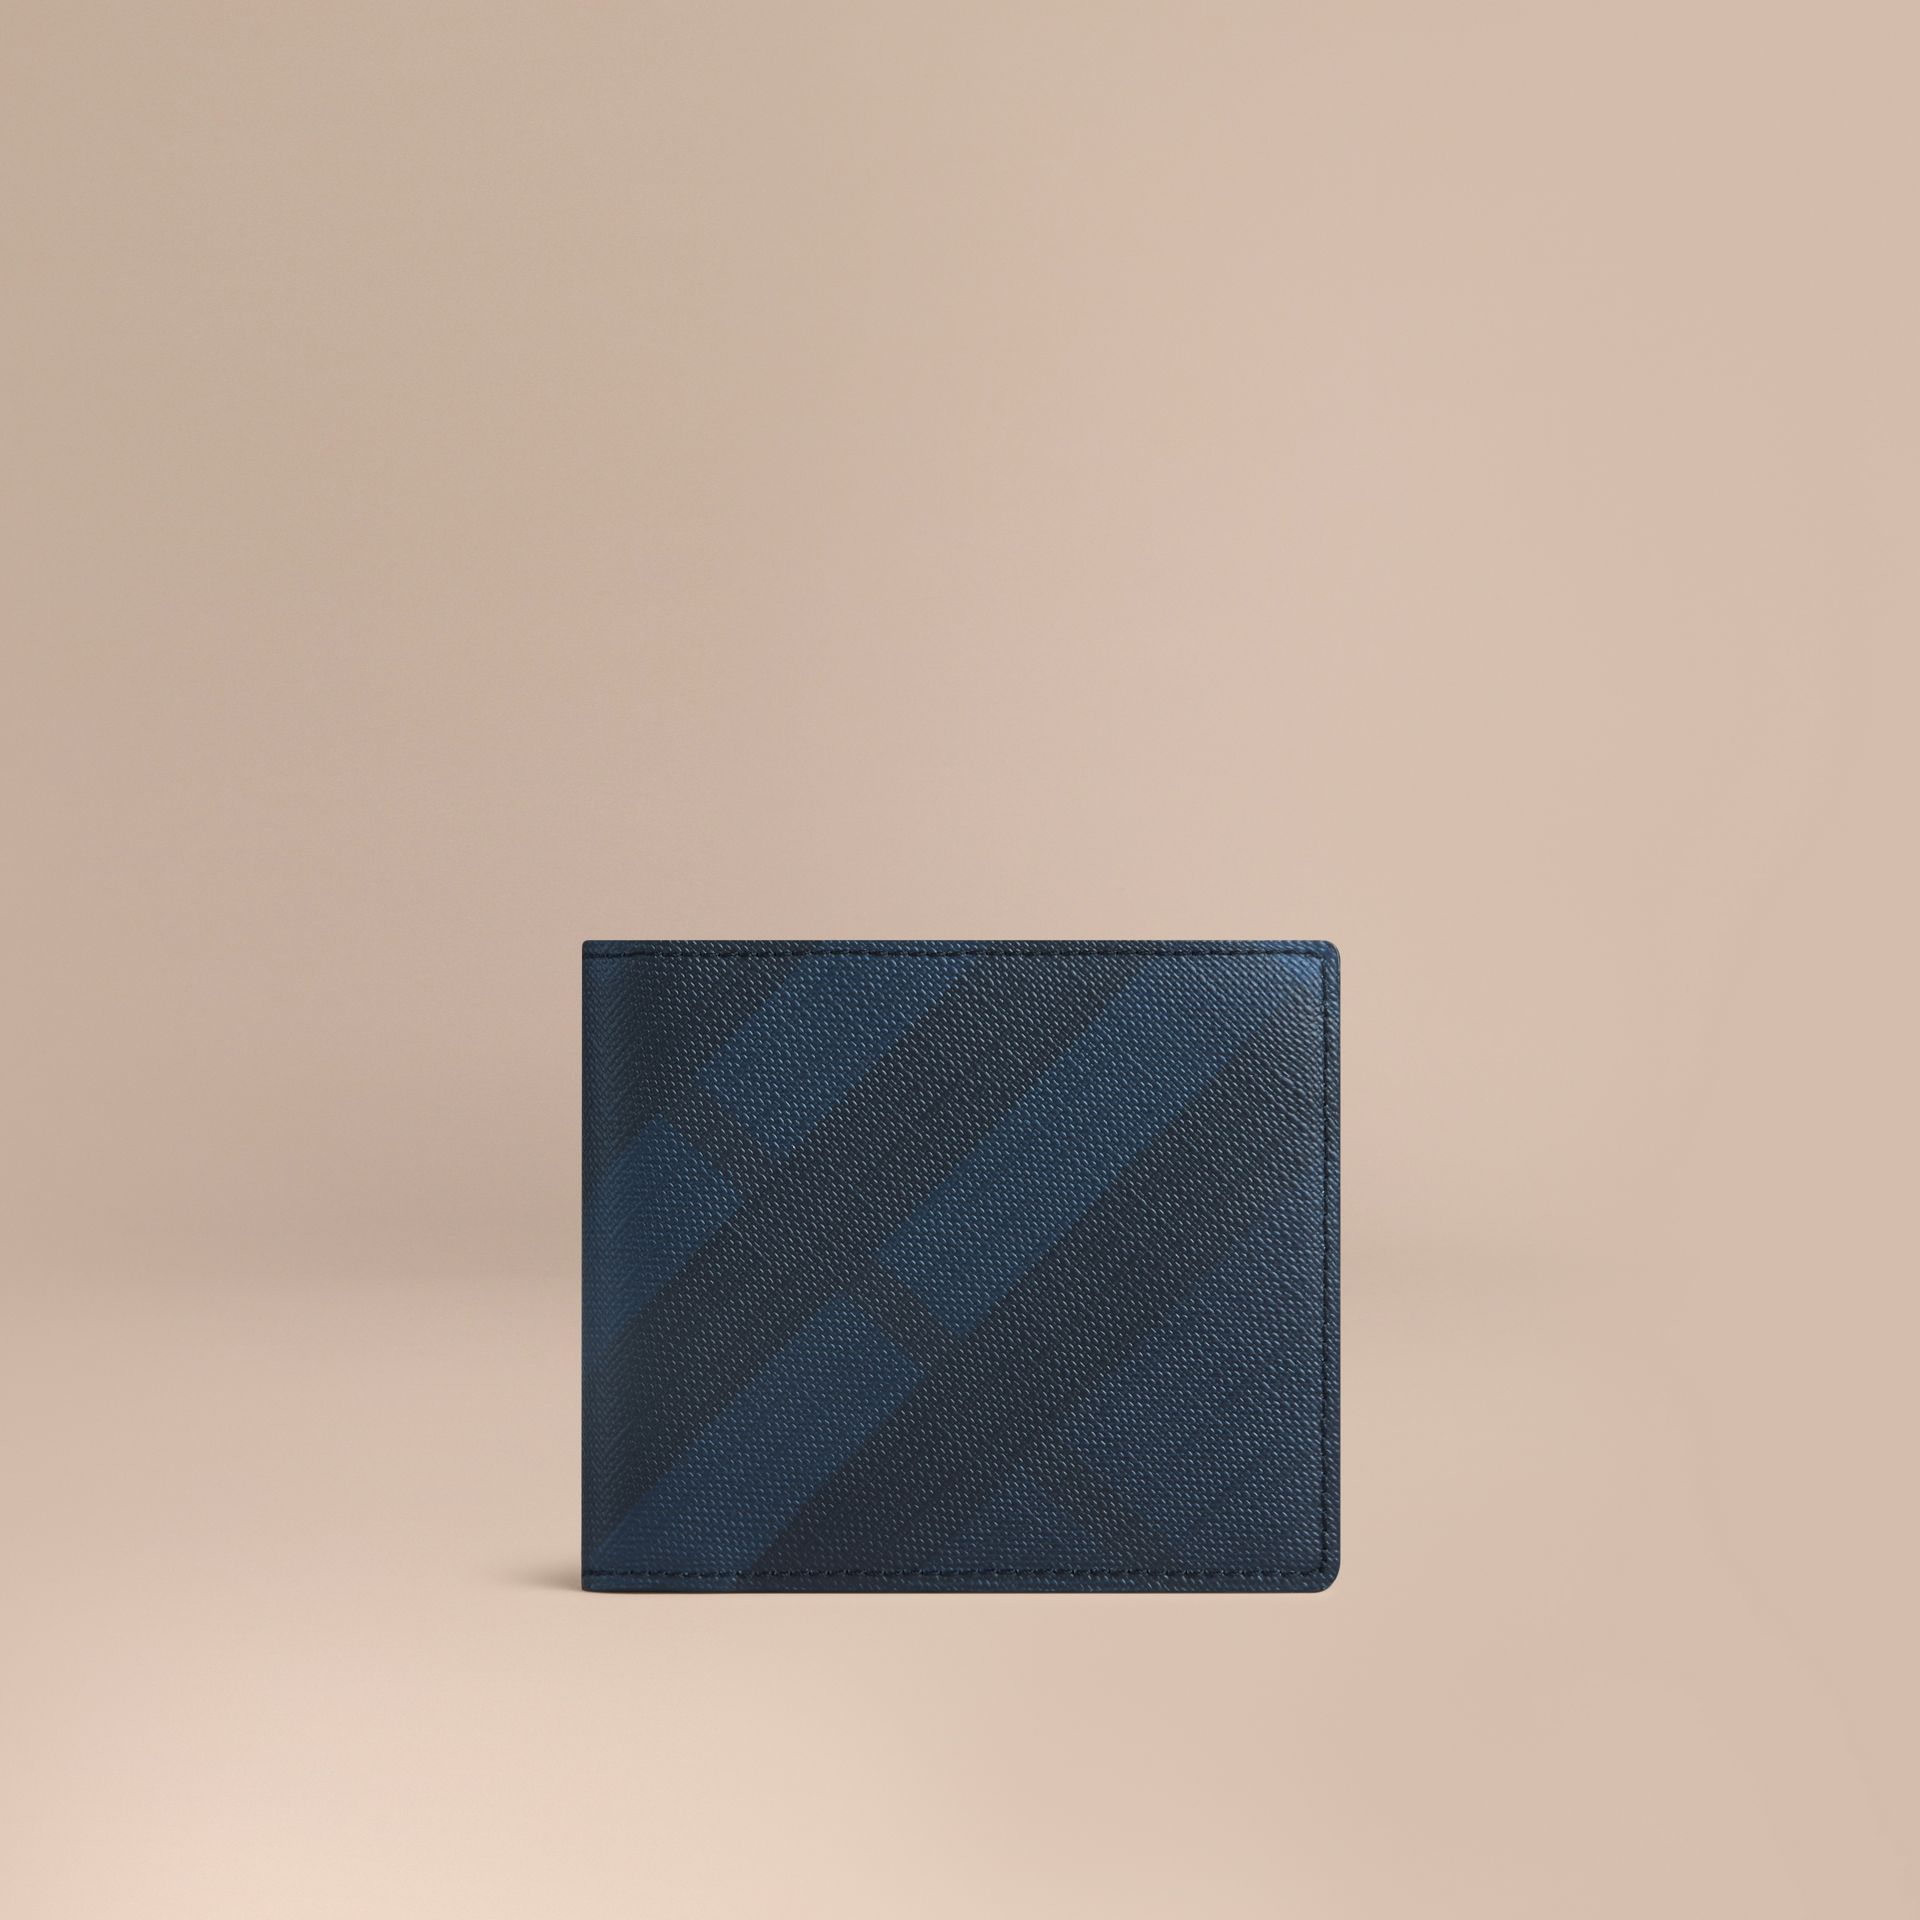 London Check ID Wallet in Navy/black - Men | Burberry Australia - gallery image 1